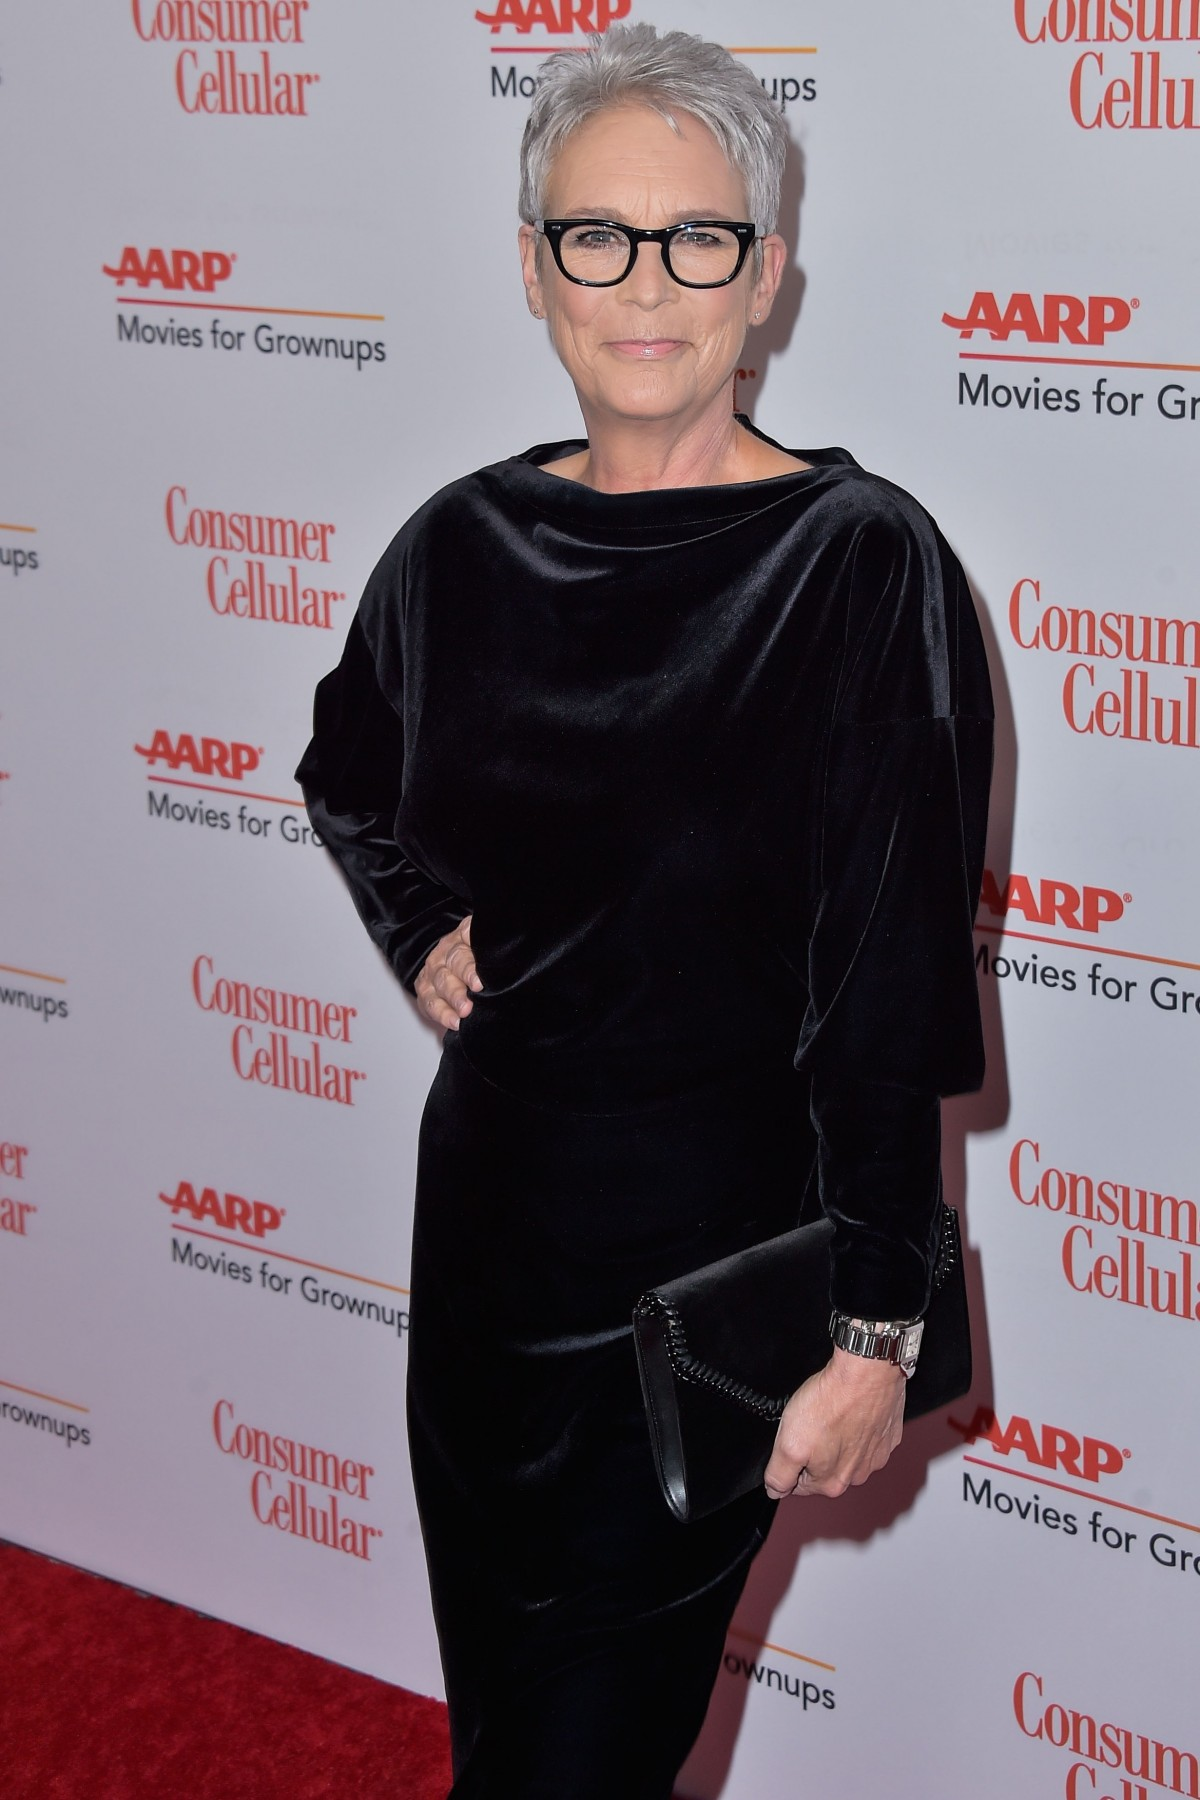 Jamie Lee Curtis arrives at AARP The Magazine's 19th Annual Movies For Grownups Awards held at The Beverly Wilshire Four Seasons Hotel on January 11, 2020 in Beverly Hills, Los Angeles, California, United States. (Photo by Image Press Agency)